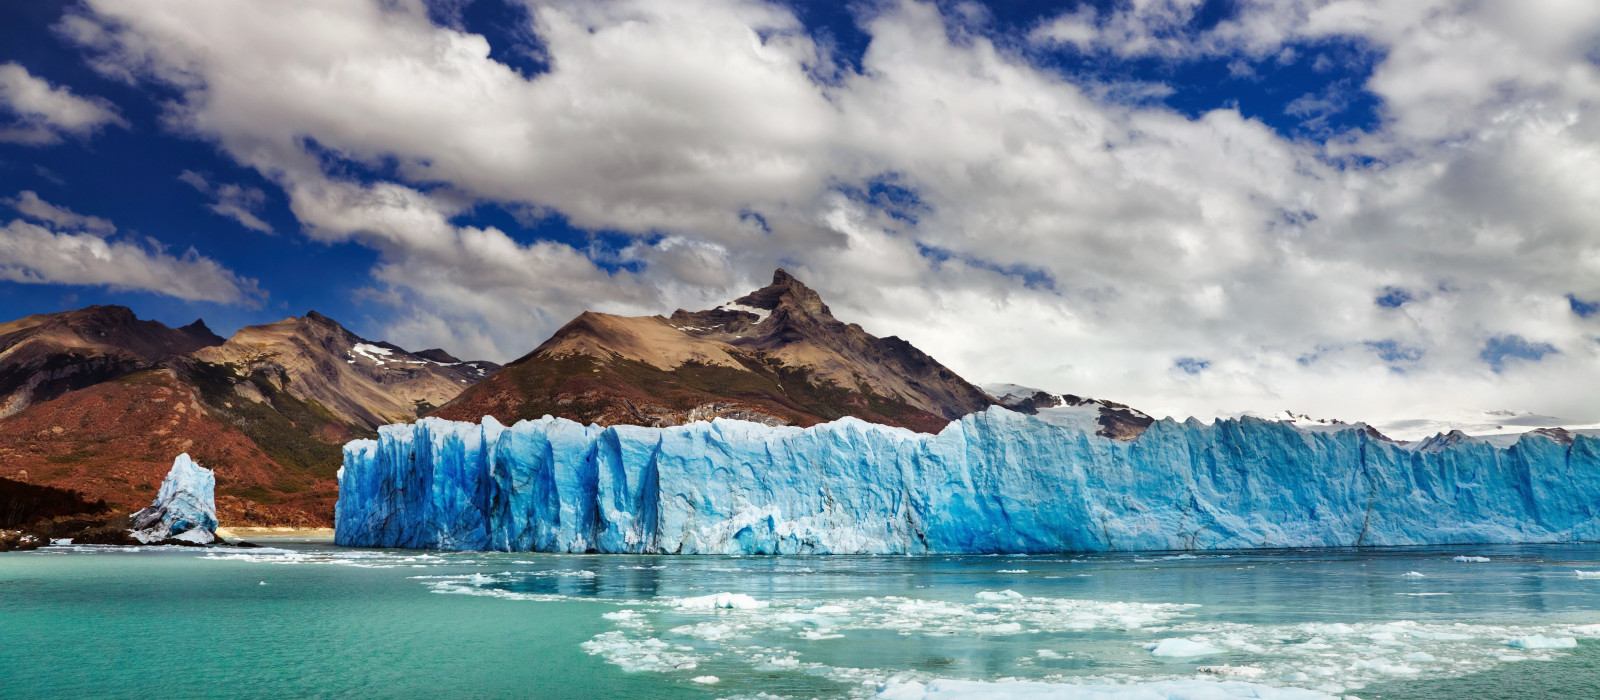 Glaciers, Wildlife and Waterfalls in Argentina Tour Trip 1